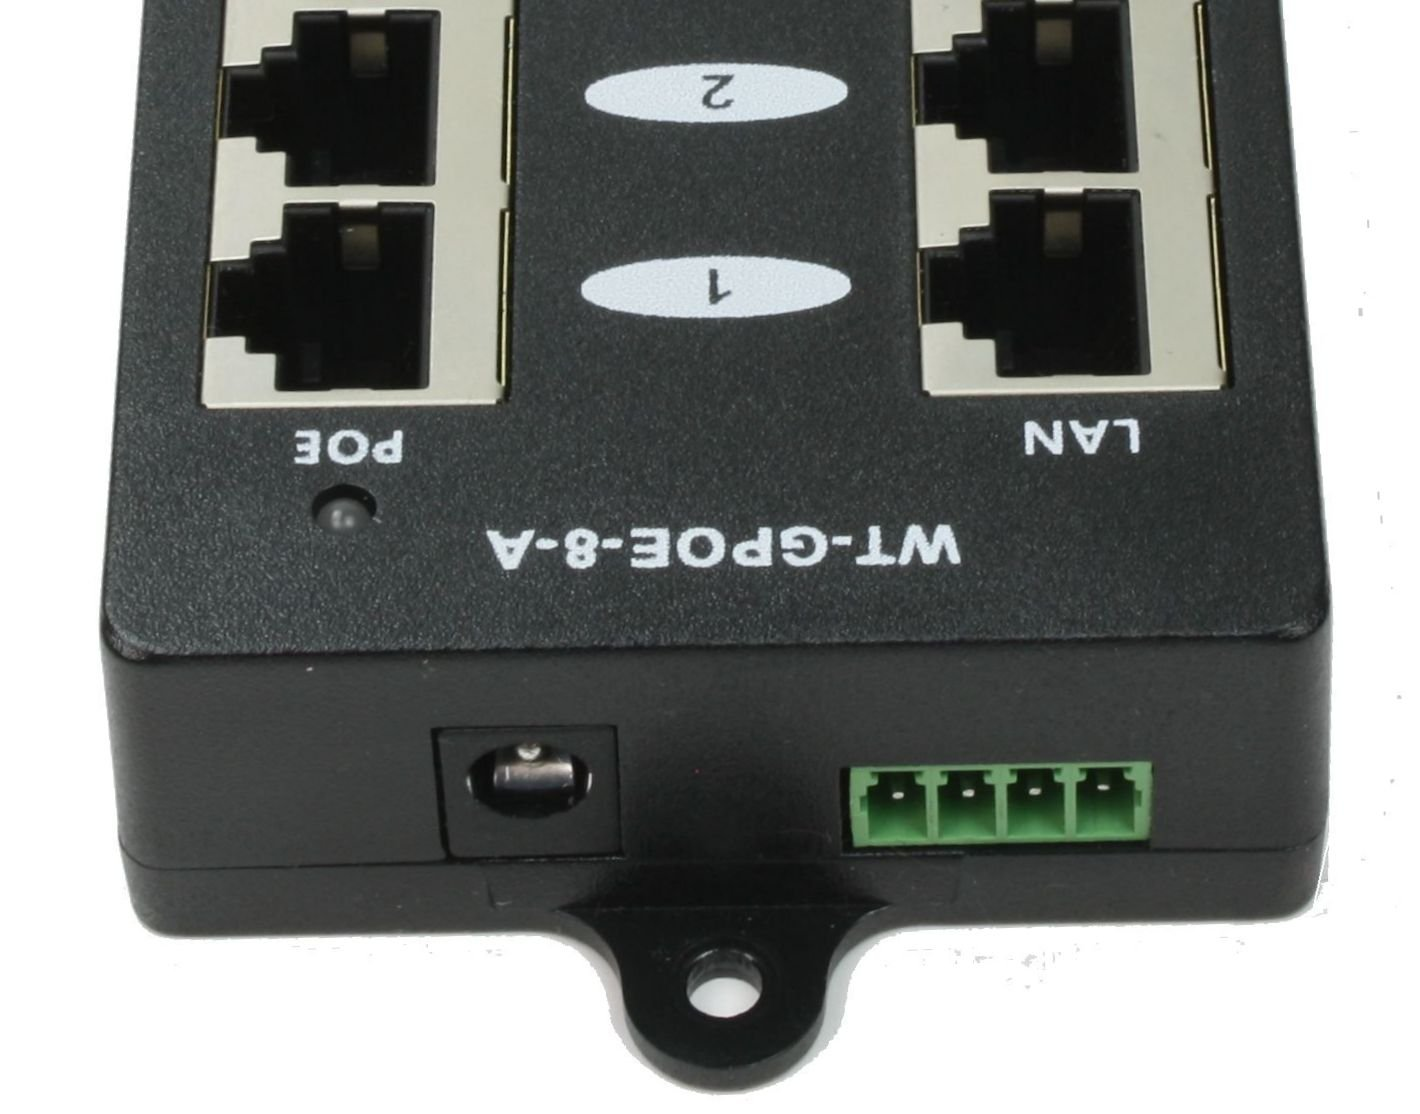 WT-GPOE-8 Multi Port Gigabit PoE Injector with 8 Ports for Power and Data To 8 Devices, Add Power over Ethernet To Any Switch-NOT INCLUDED.Use with External Power Supply for Passive or 802.3af Devices by WiFi-Texas (Image #2)